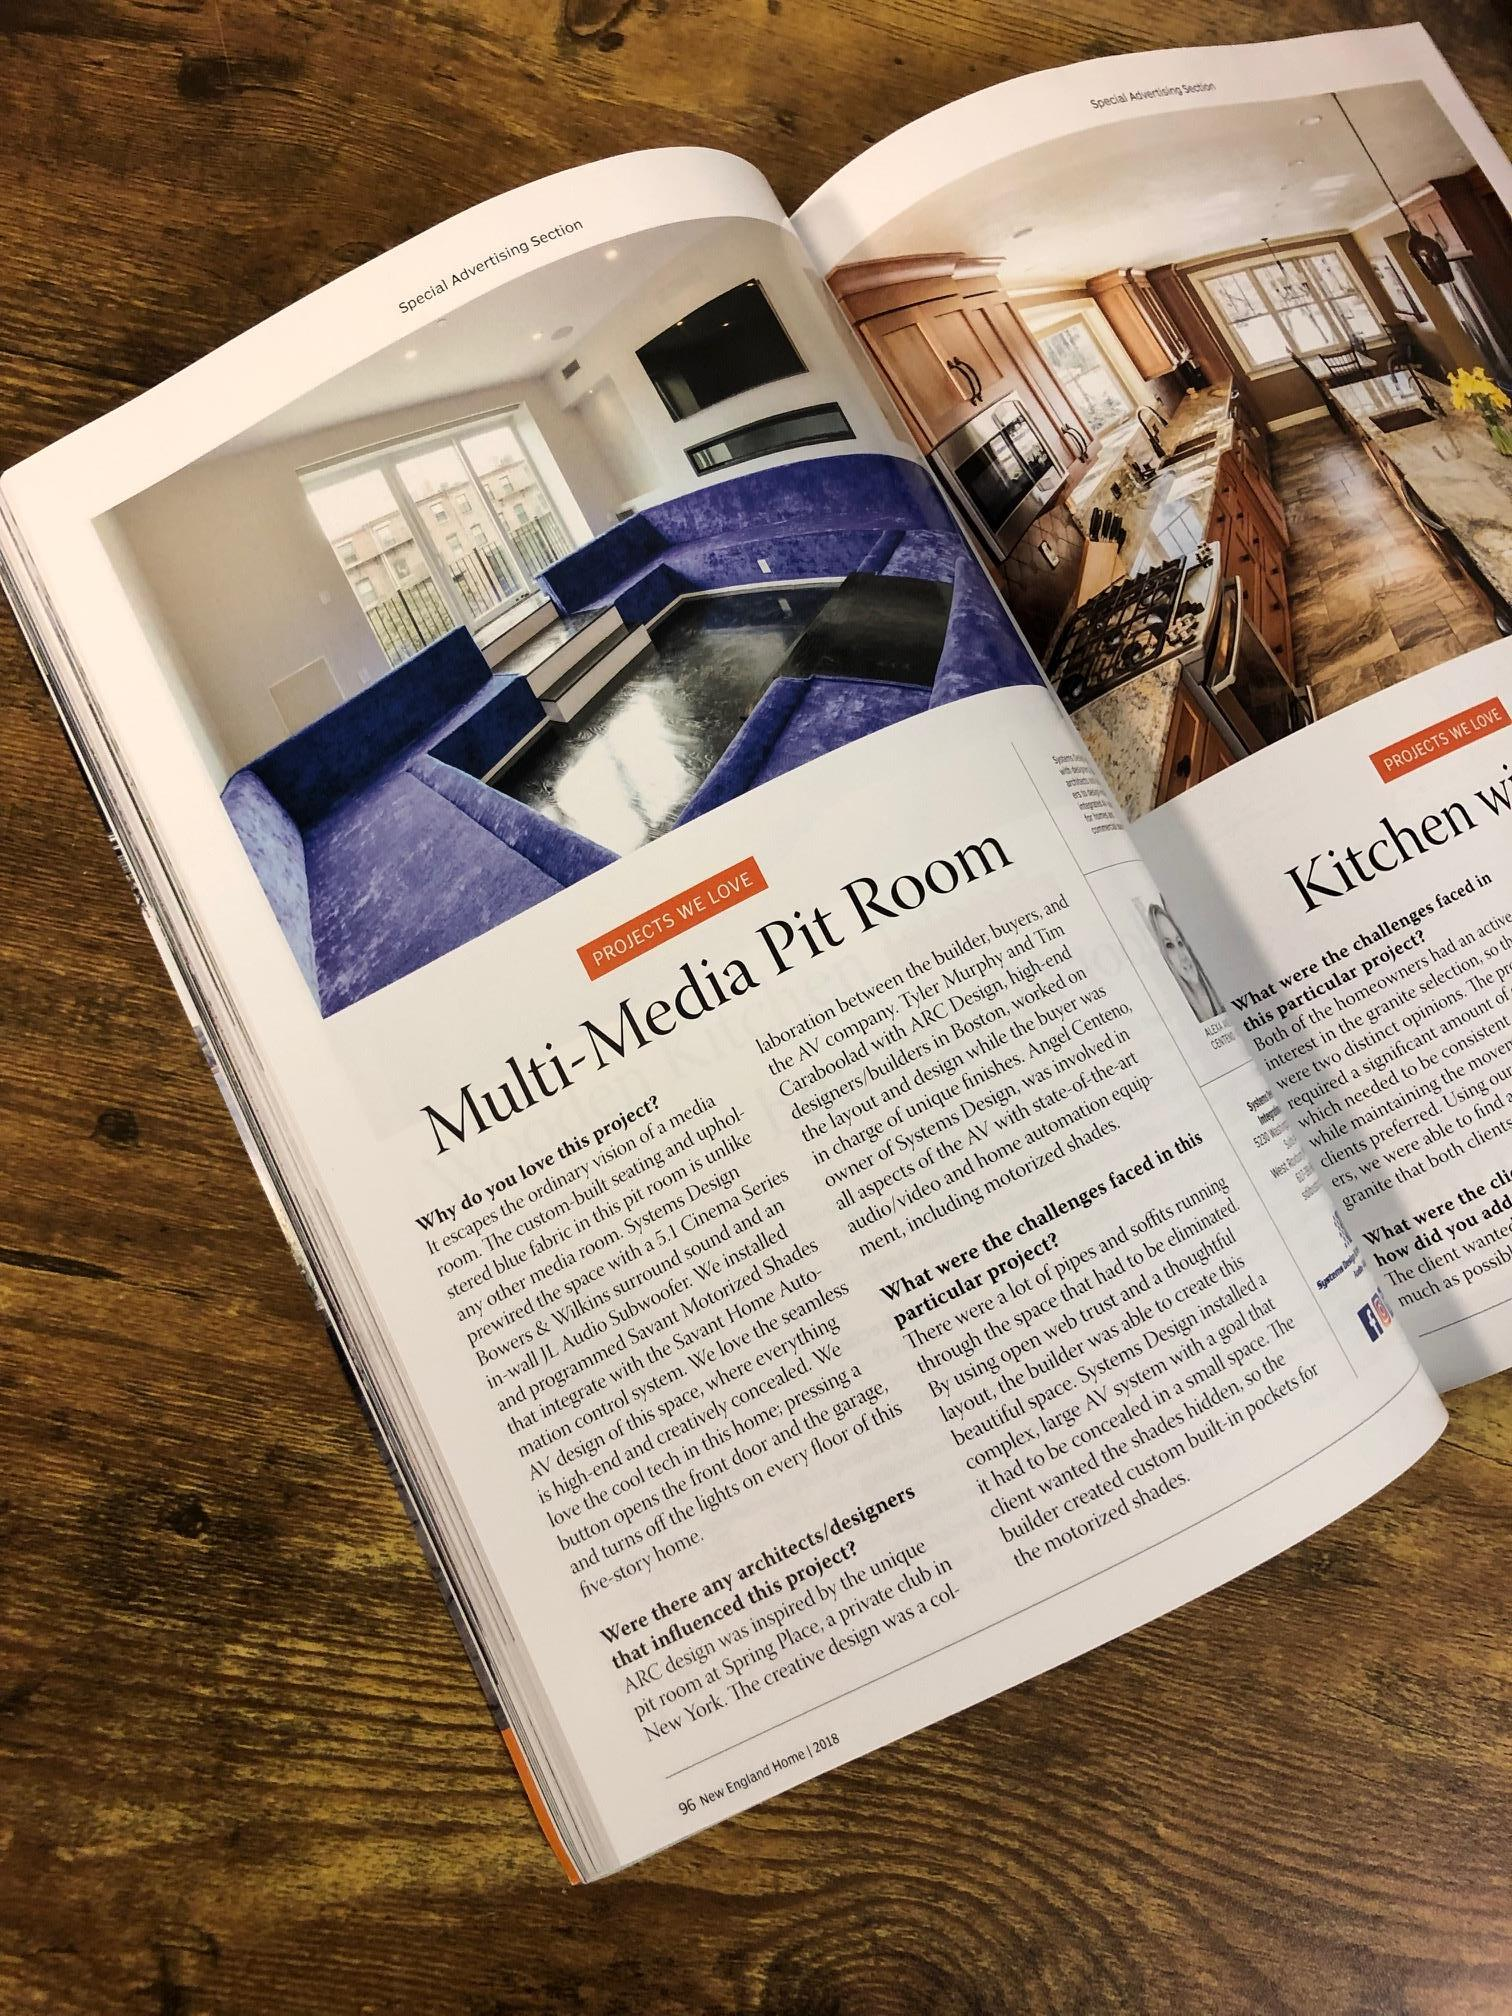 Arc Design featured in New England Home, 2018, for 11 Rutland Square